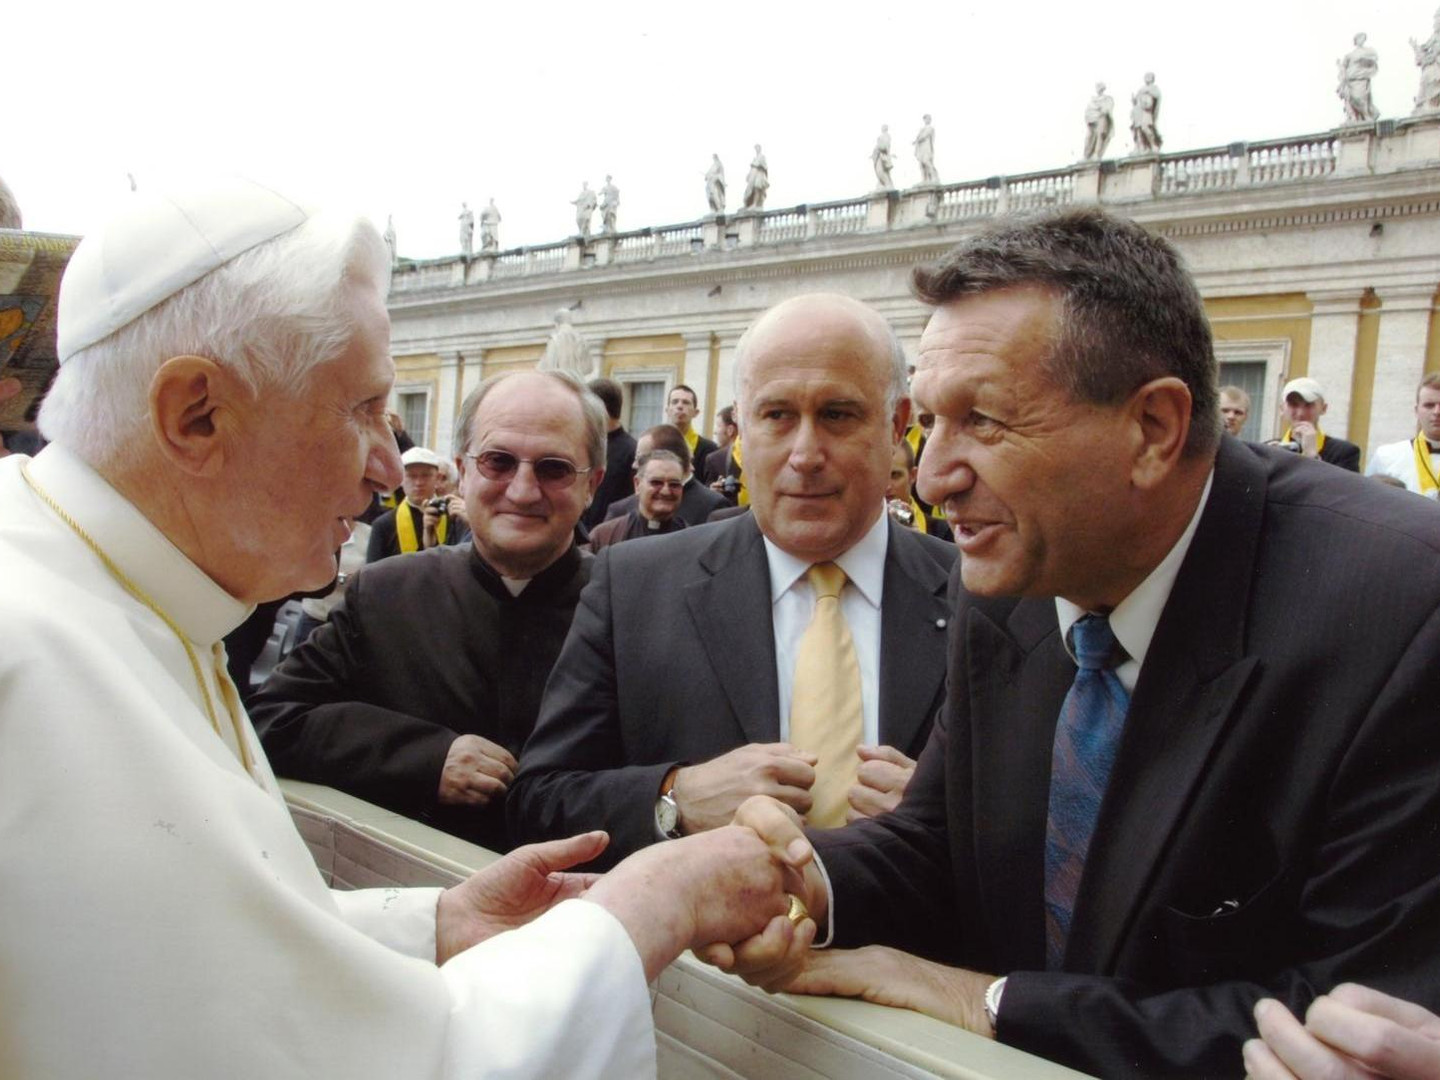 Pope and Amos meeting in the Vatican